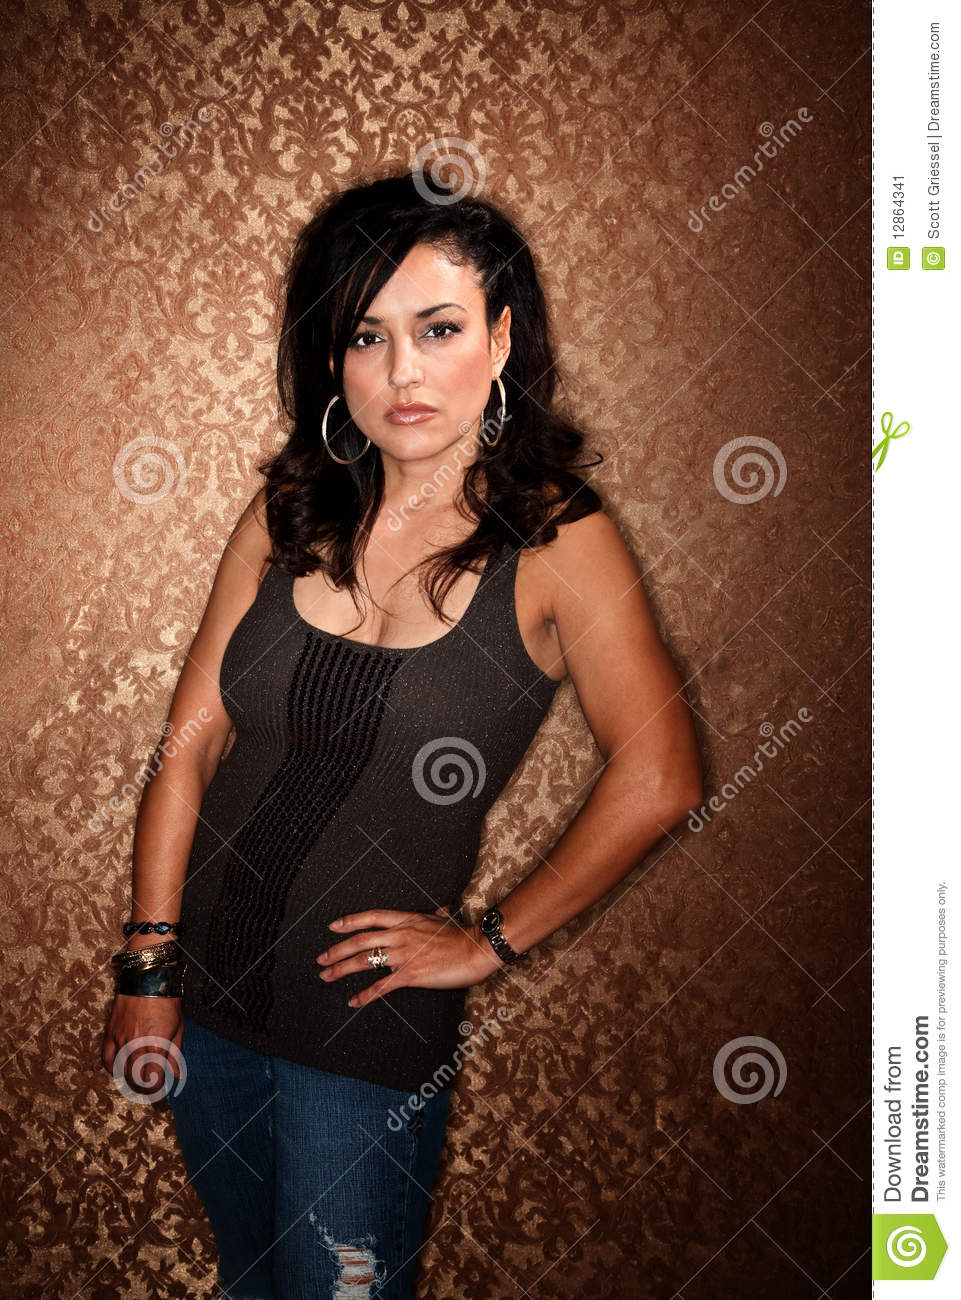 Pretty Hispanic Woman Stock Image